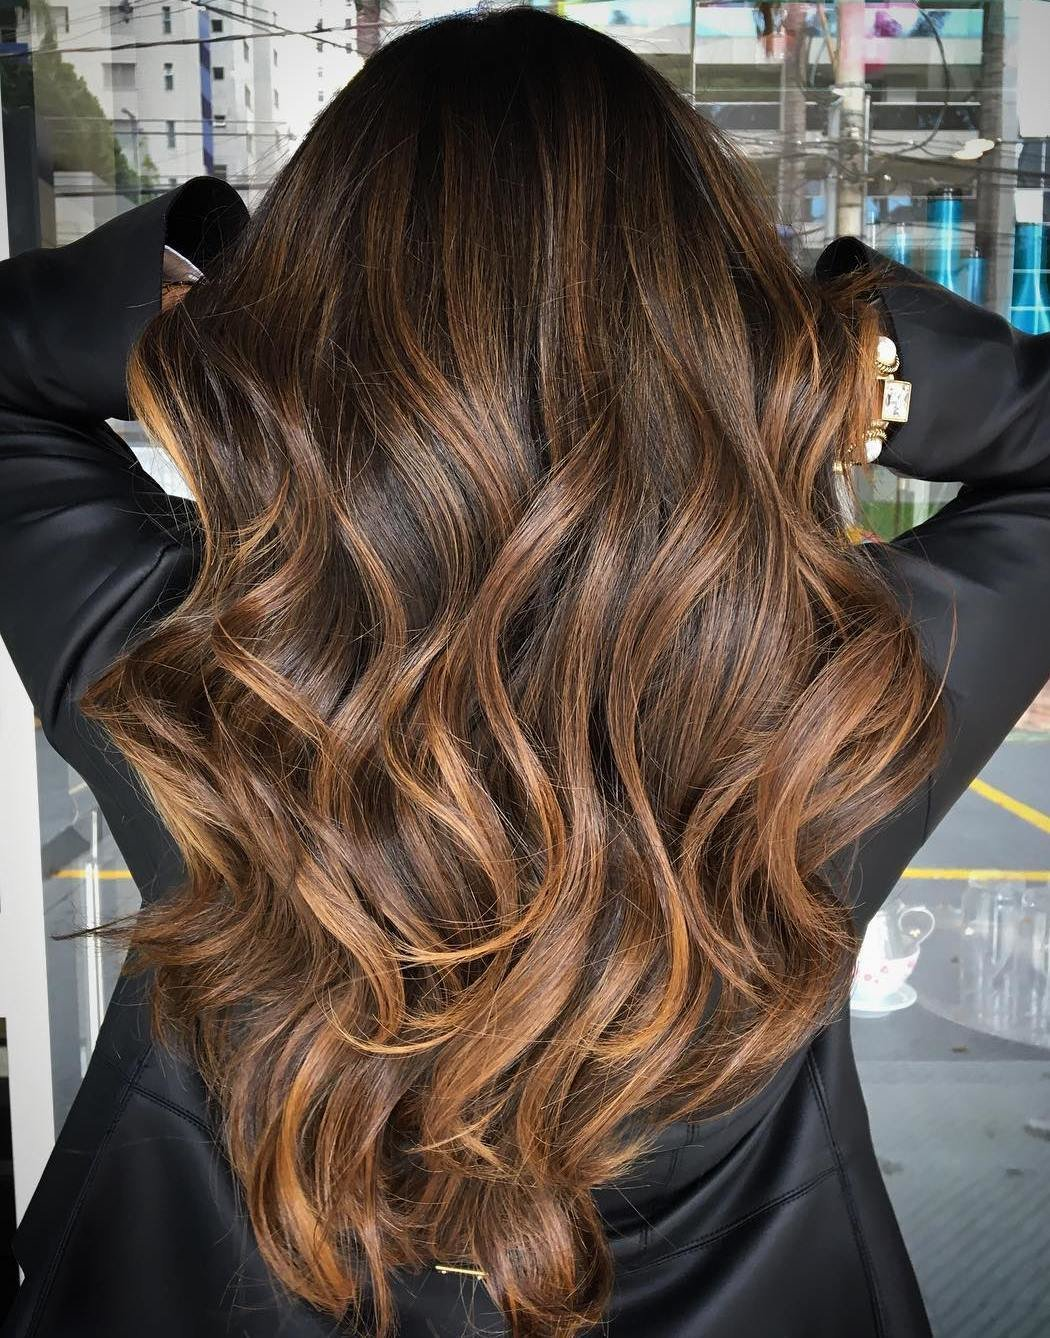 The Best Trubridal Wedding Blog 90 Balayage Hair Color Ideas With Blonde Brown And Caramel Highlights Pictures